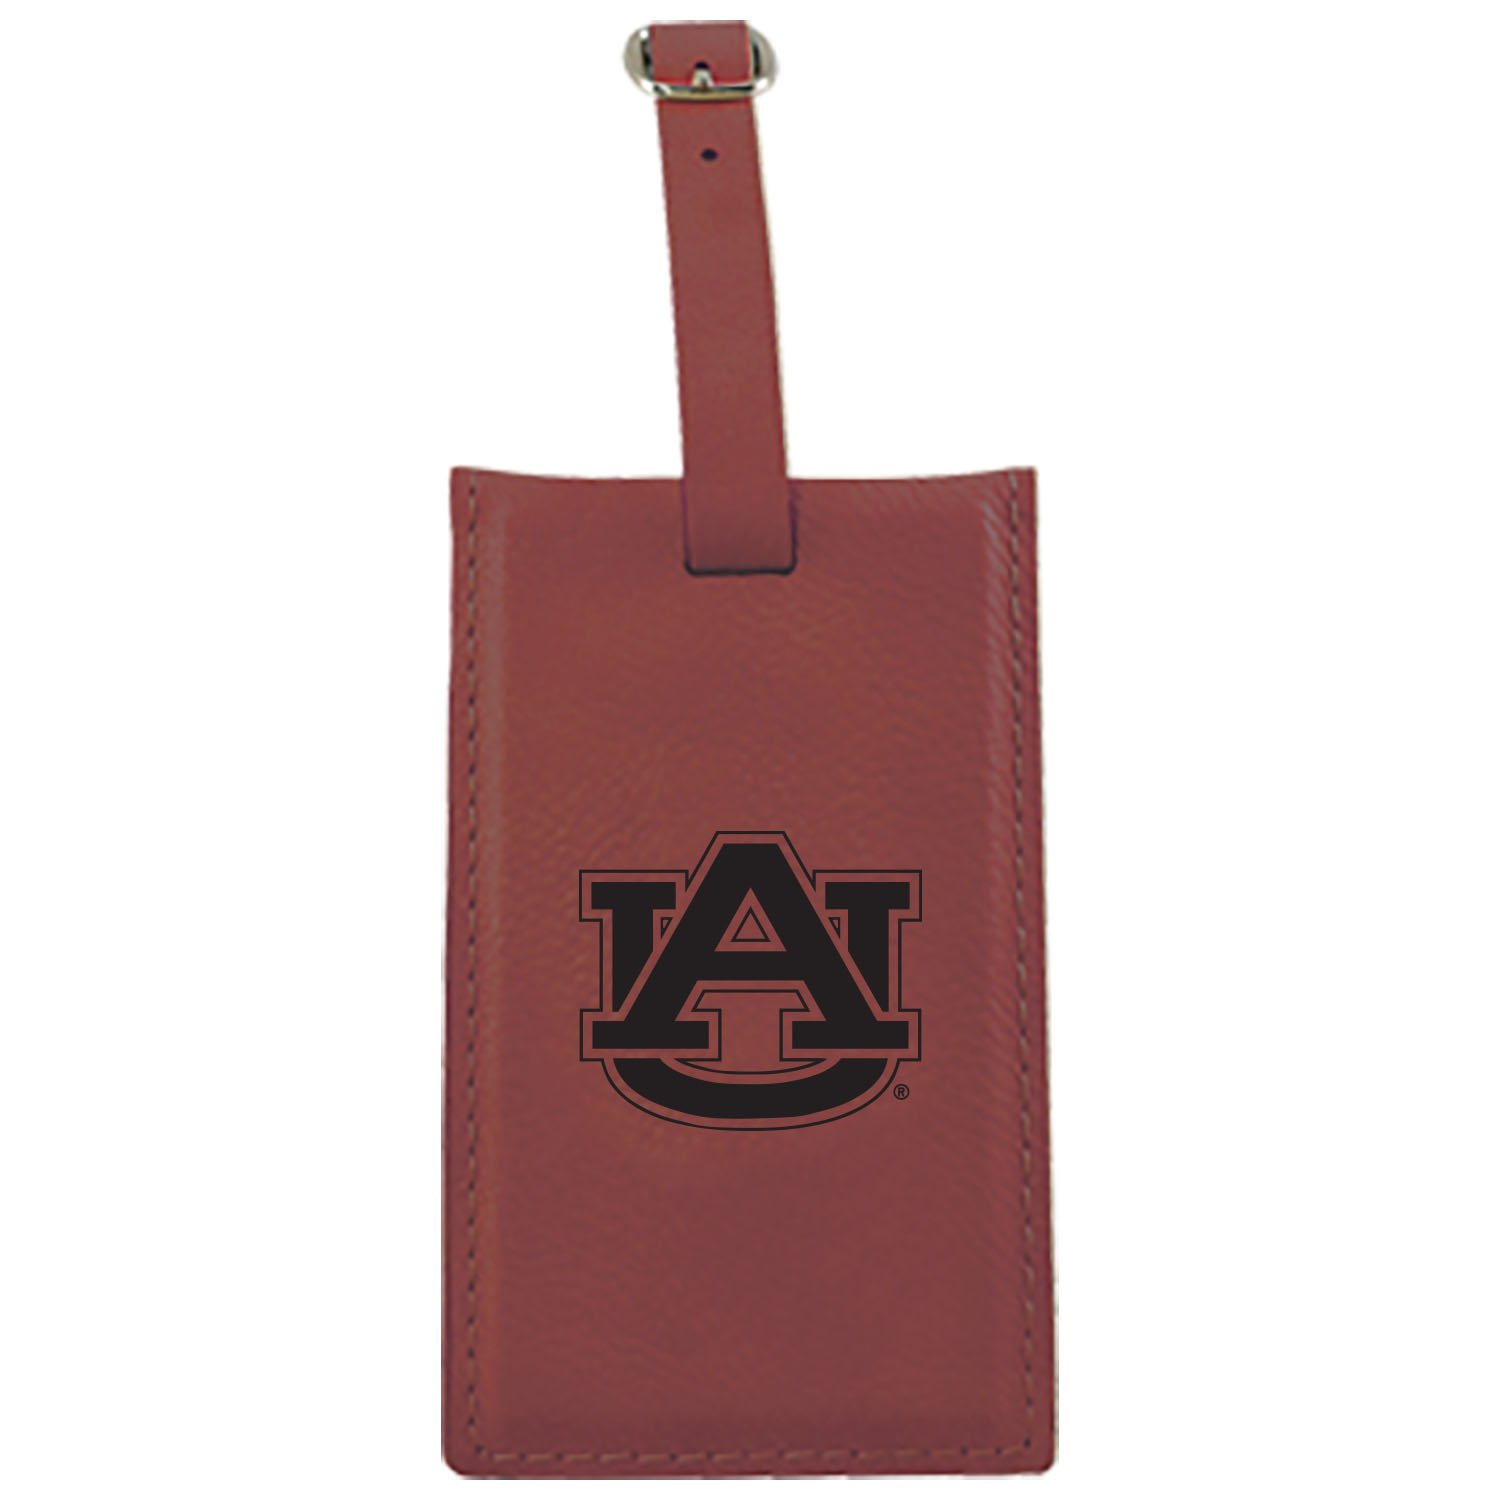 オーバーン大学 – Leatherette Luggage tag-burgundy B013VZKBJK